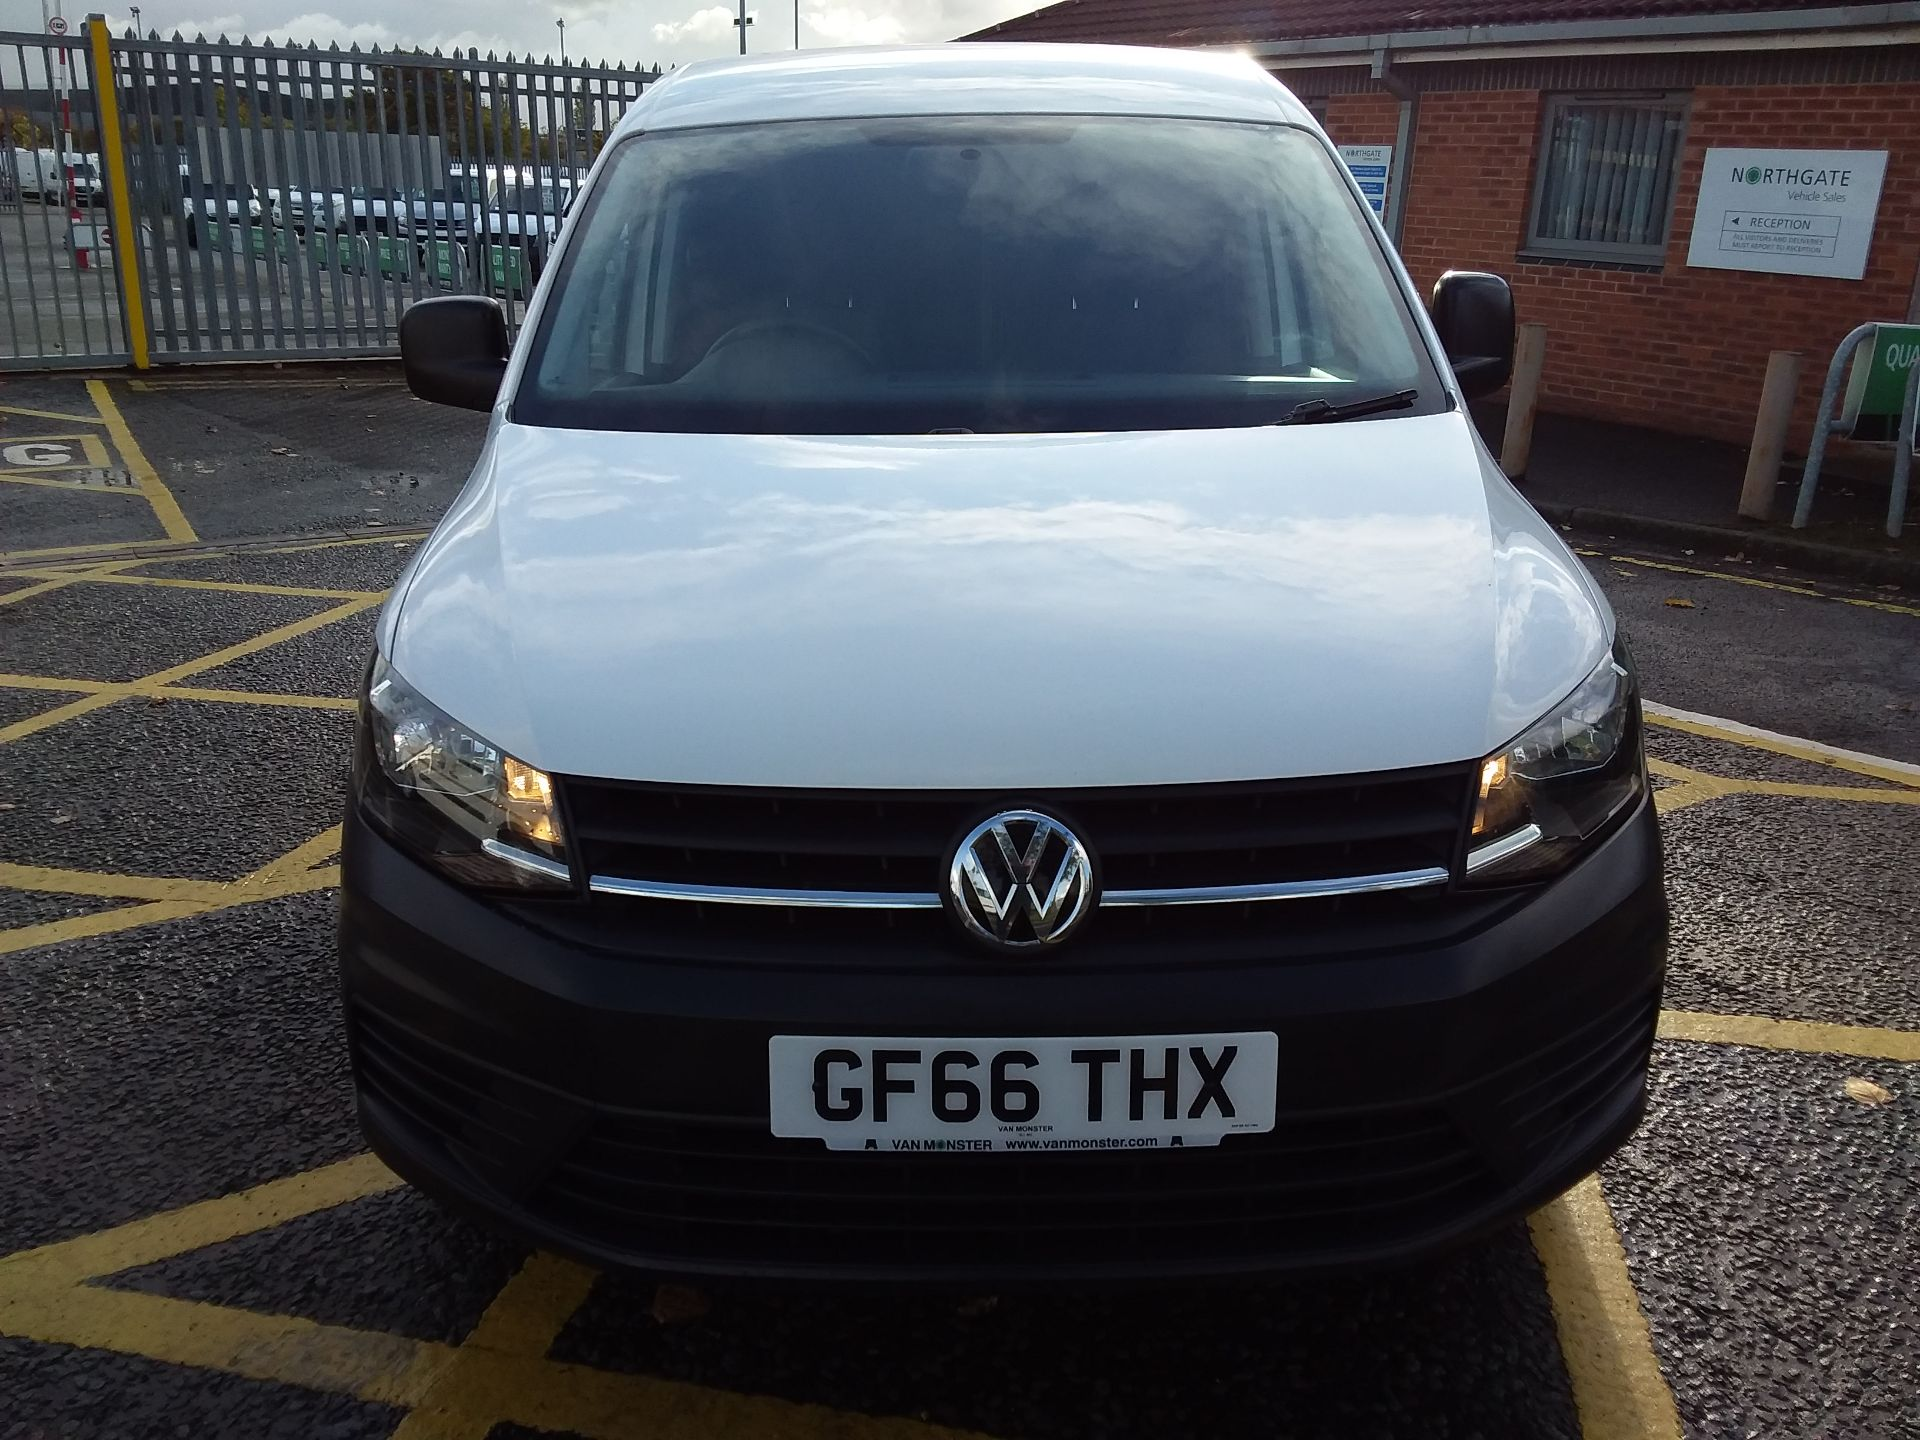 2016 Volkswagen Caddy 1.6 Tdi 102Ps Van (GF66THX) Image 2